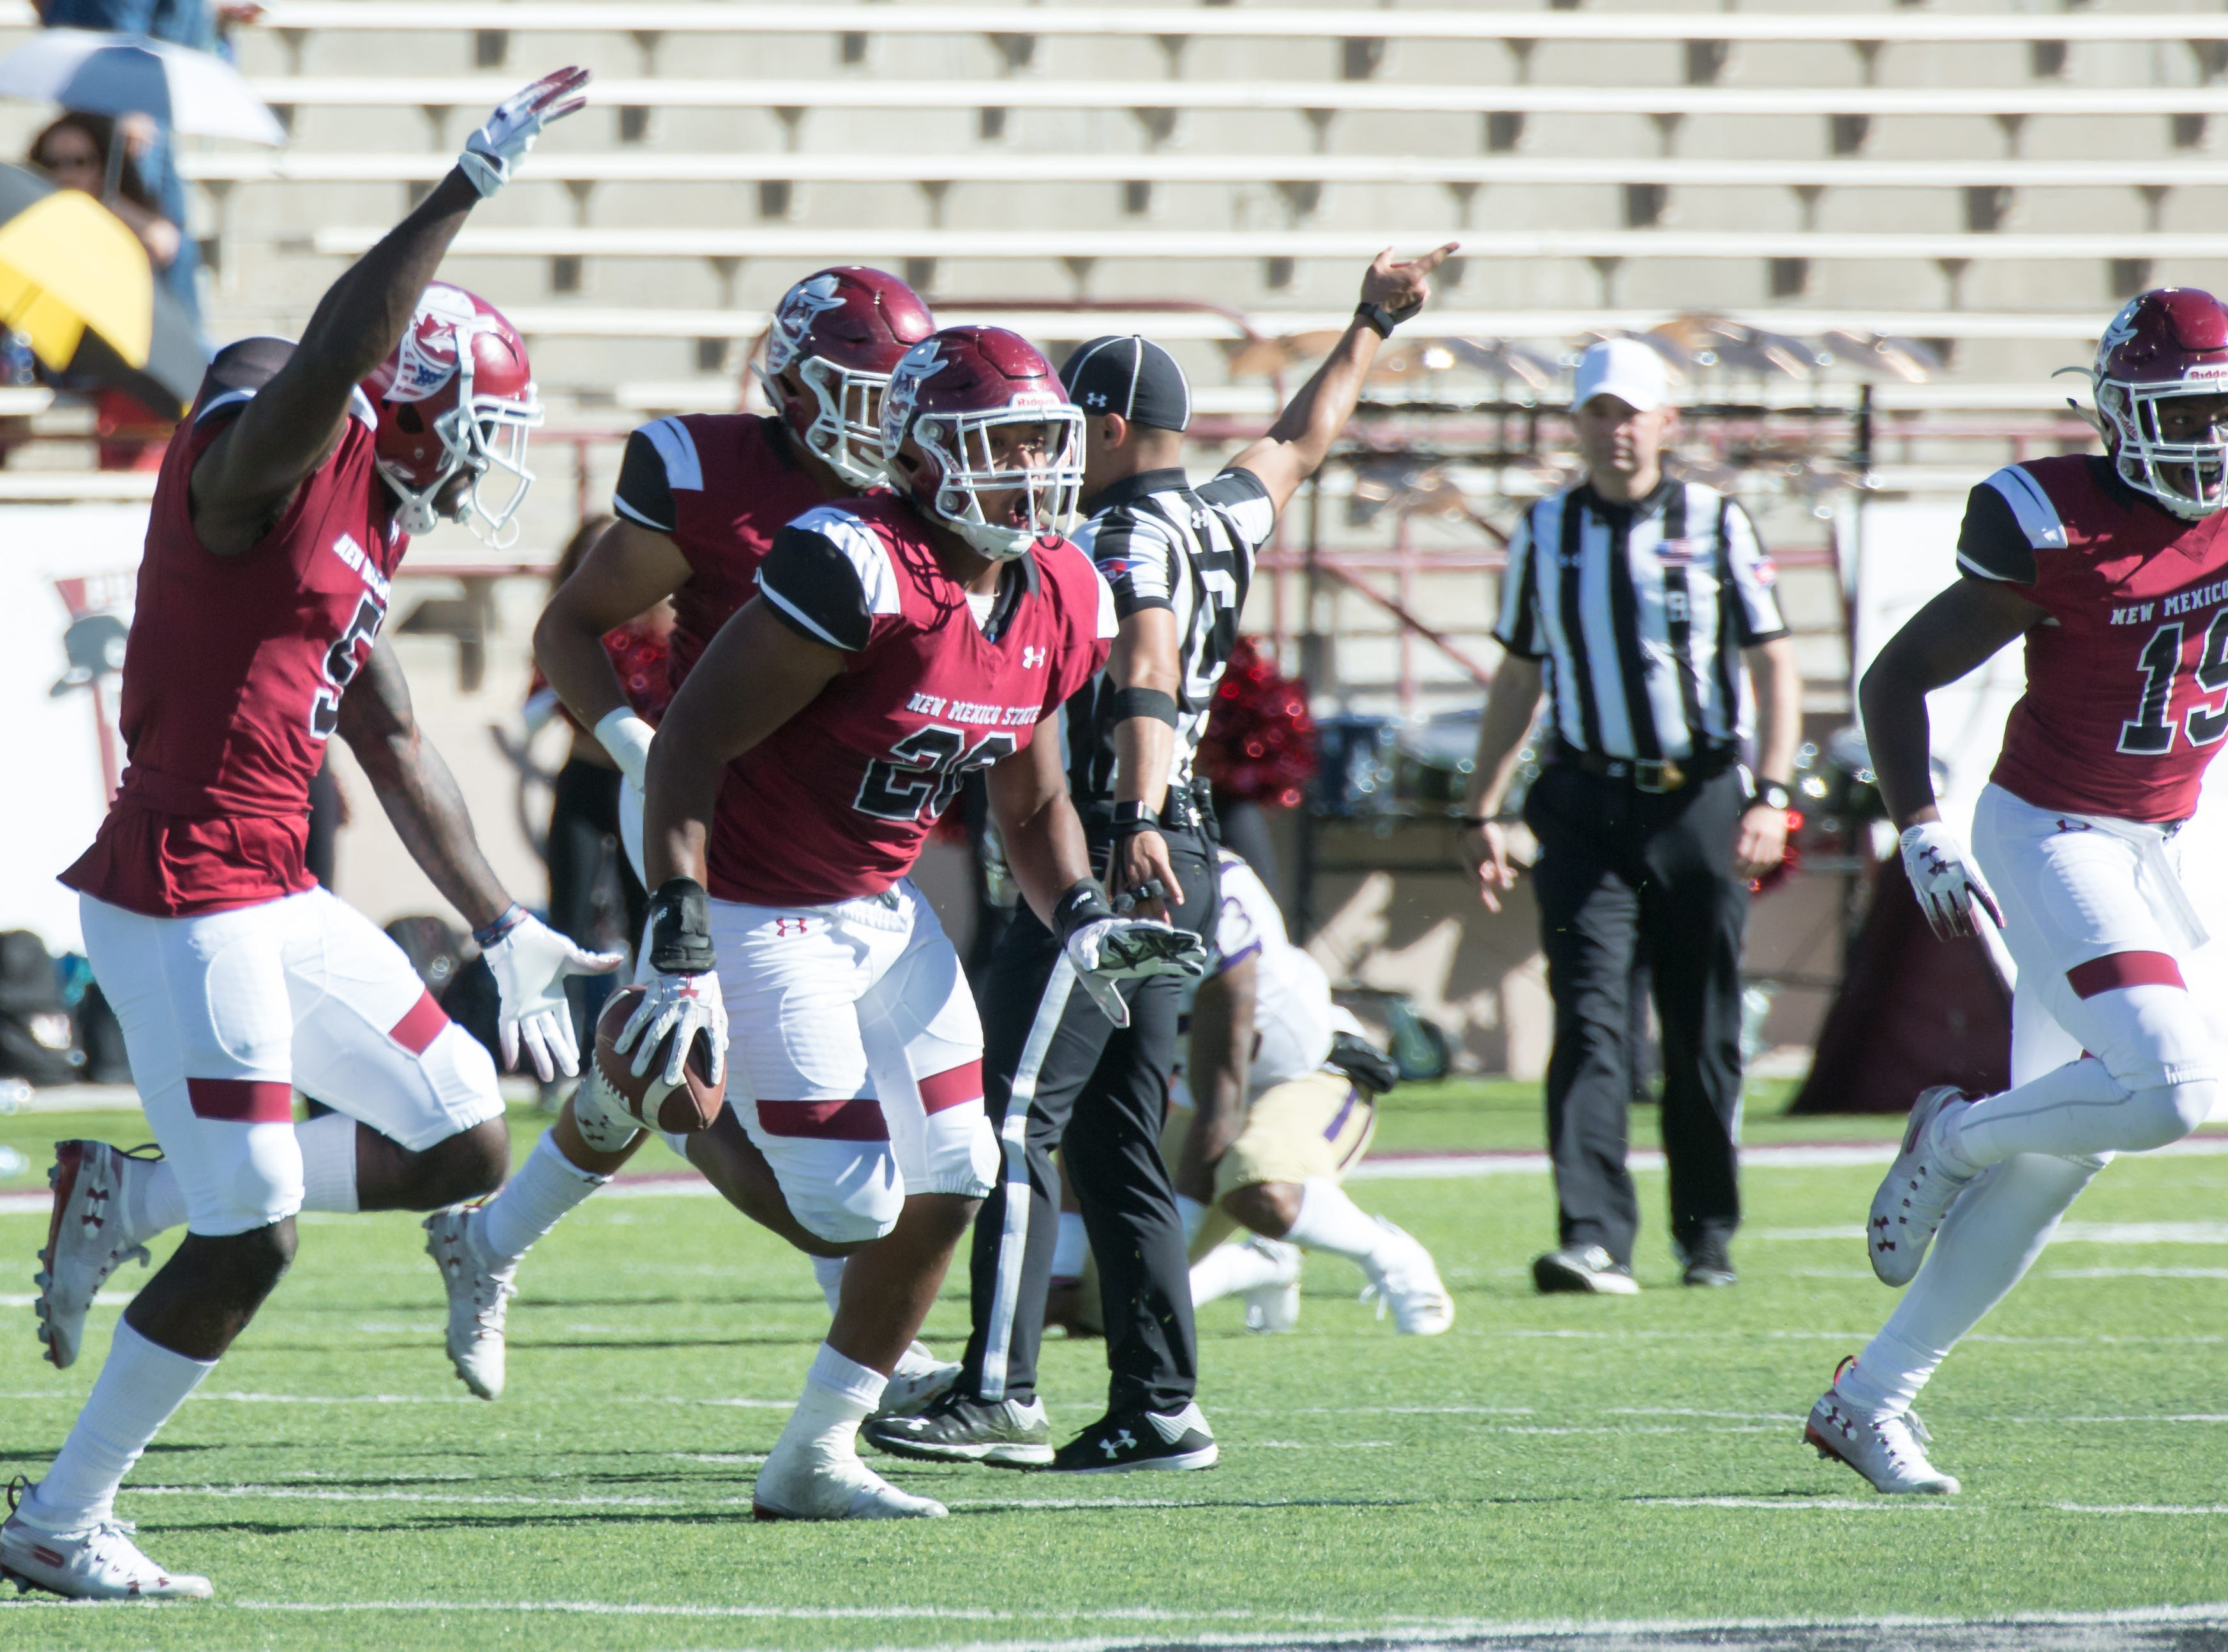 NMSU's Shane Jackson celebrates with his teammates after picking up a loose ball on Saturday, Nov. 3, 2018 at Aggie Memorial Stadium against Alcorn State.